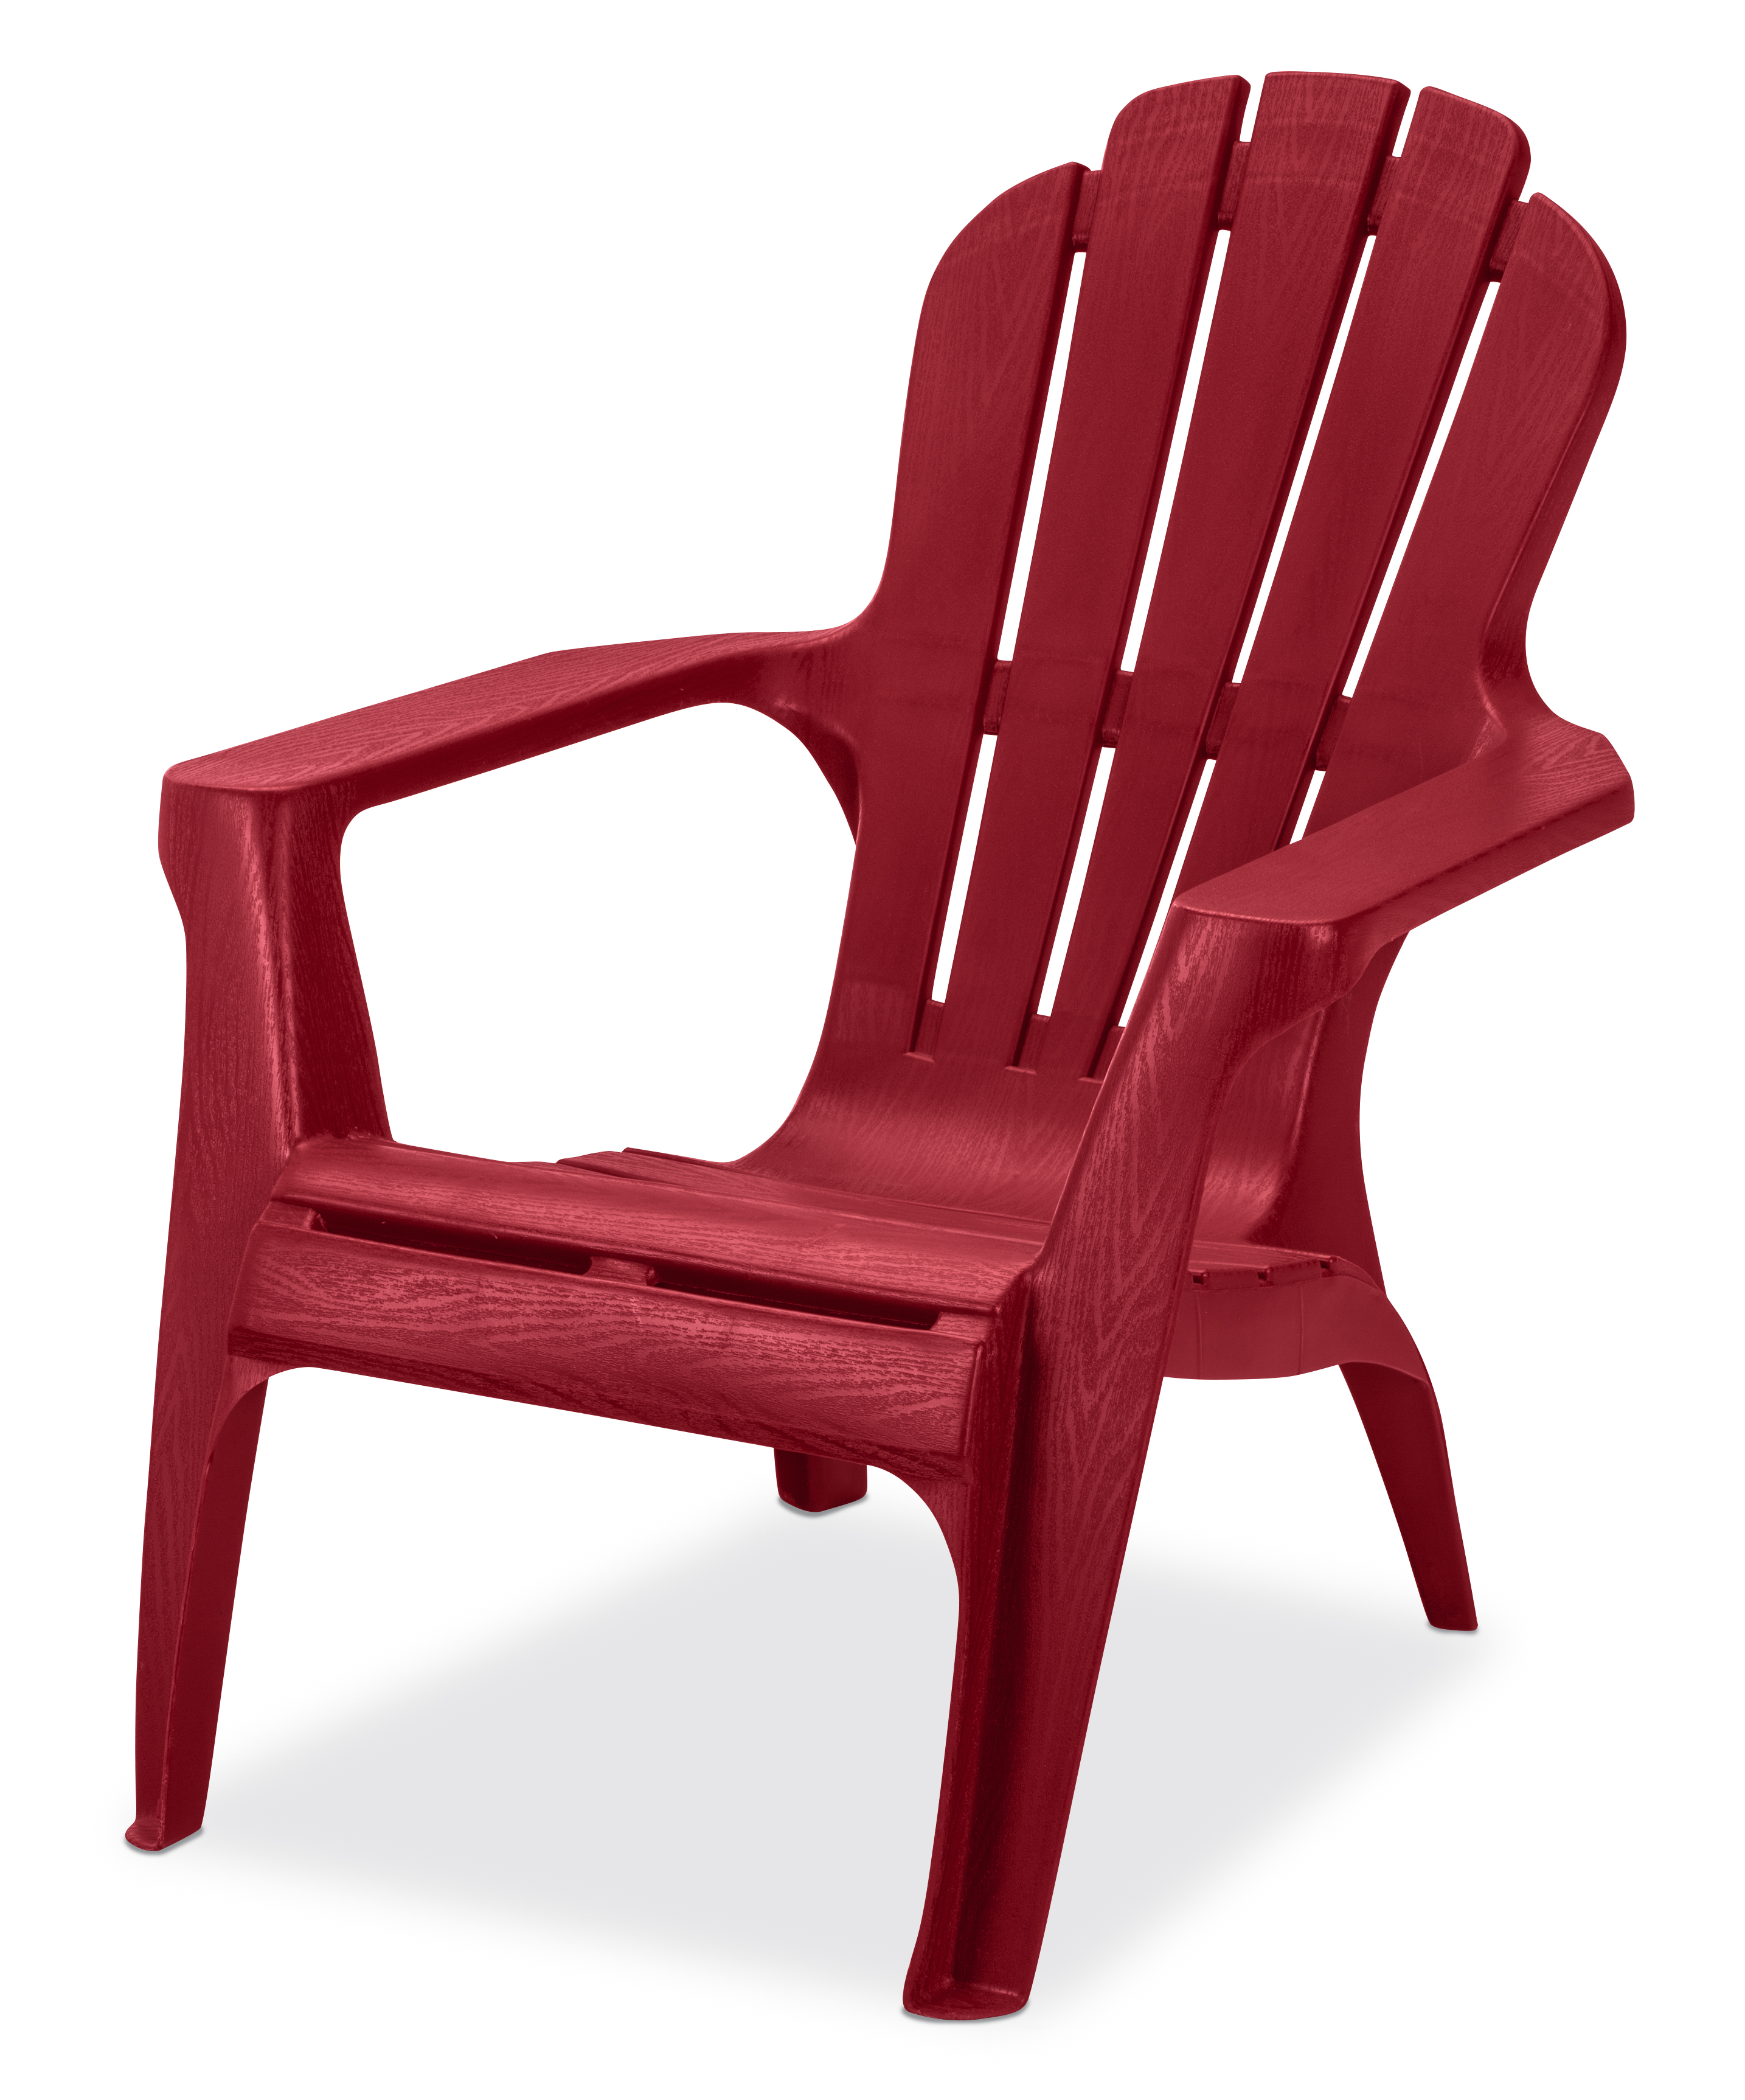 resin adirondack chairs australia rocking chair and stool cheap plastic adams realcomfort